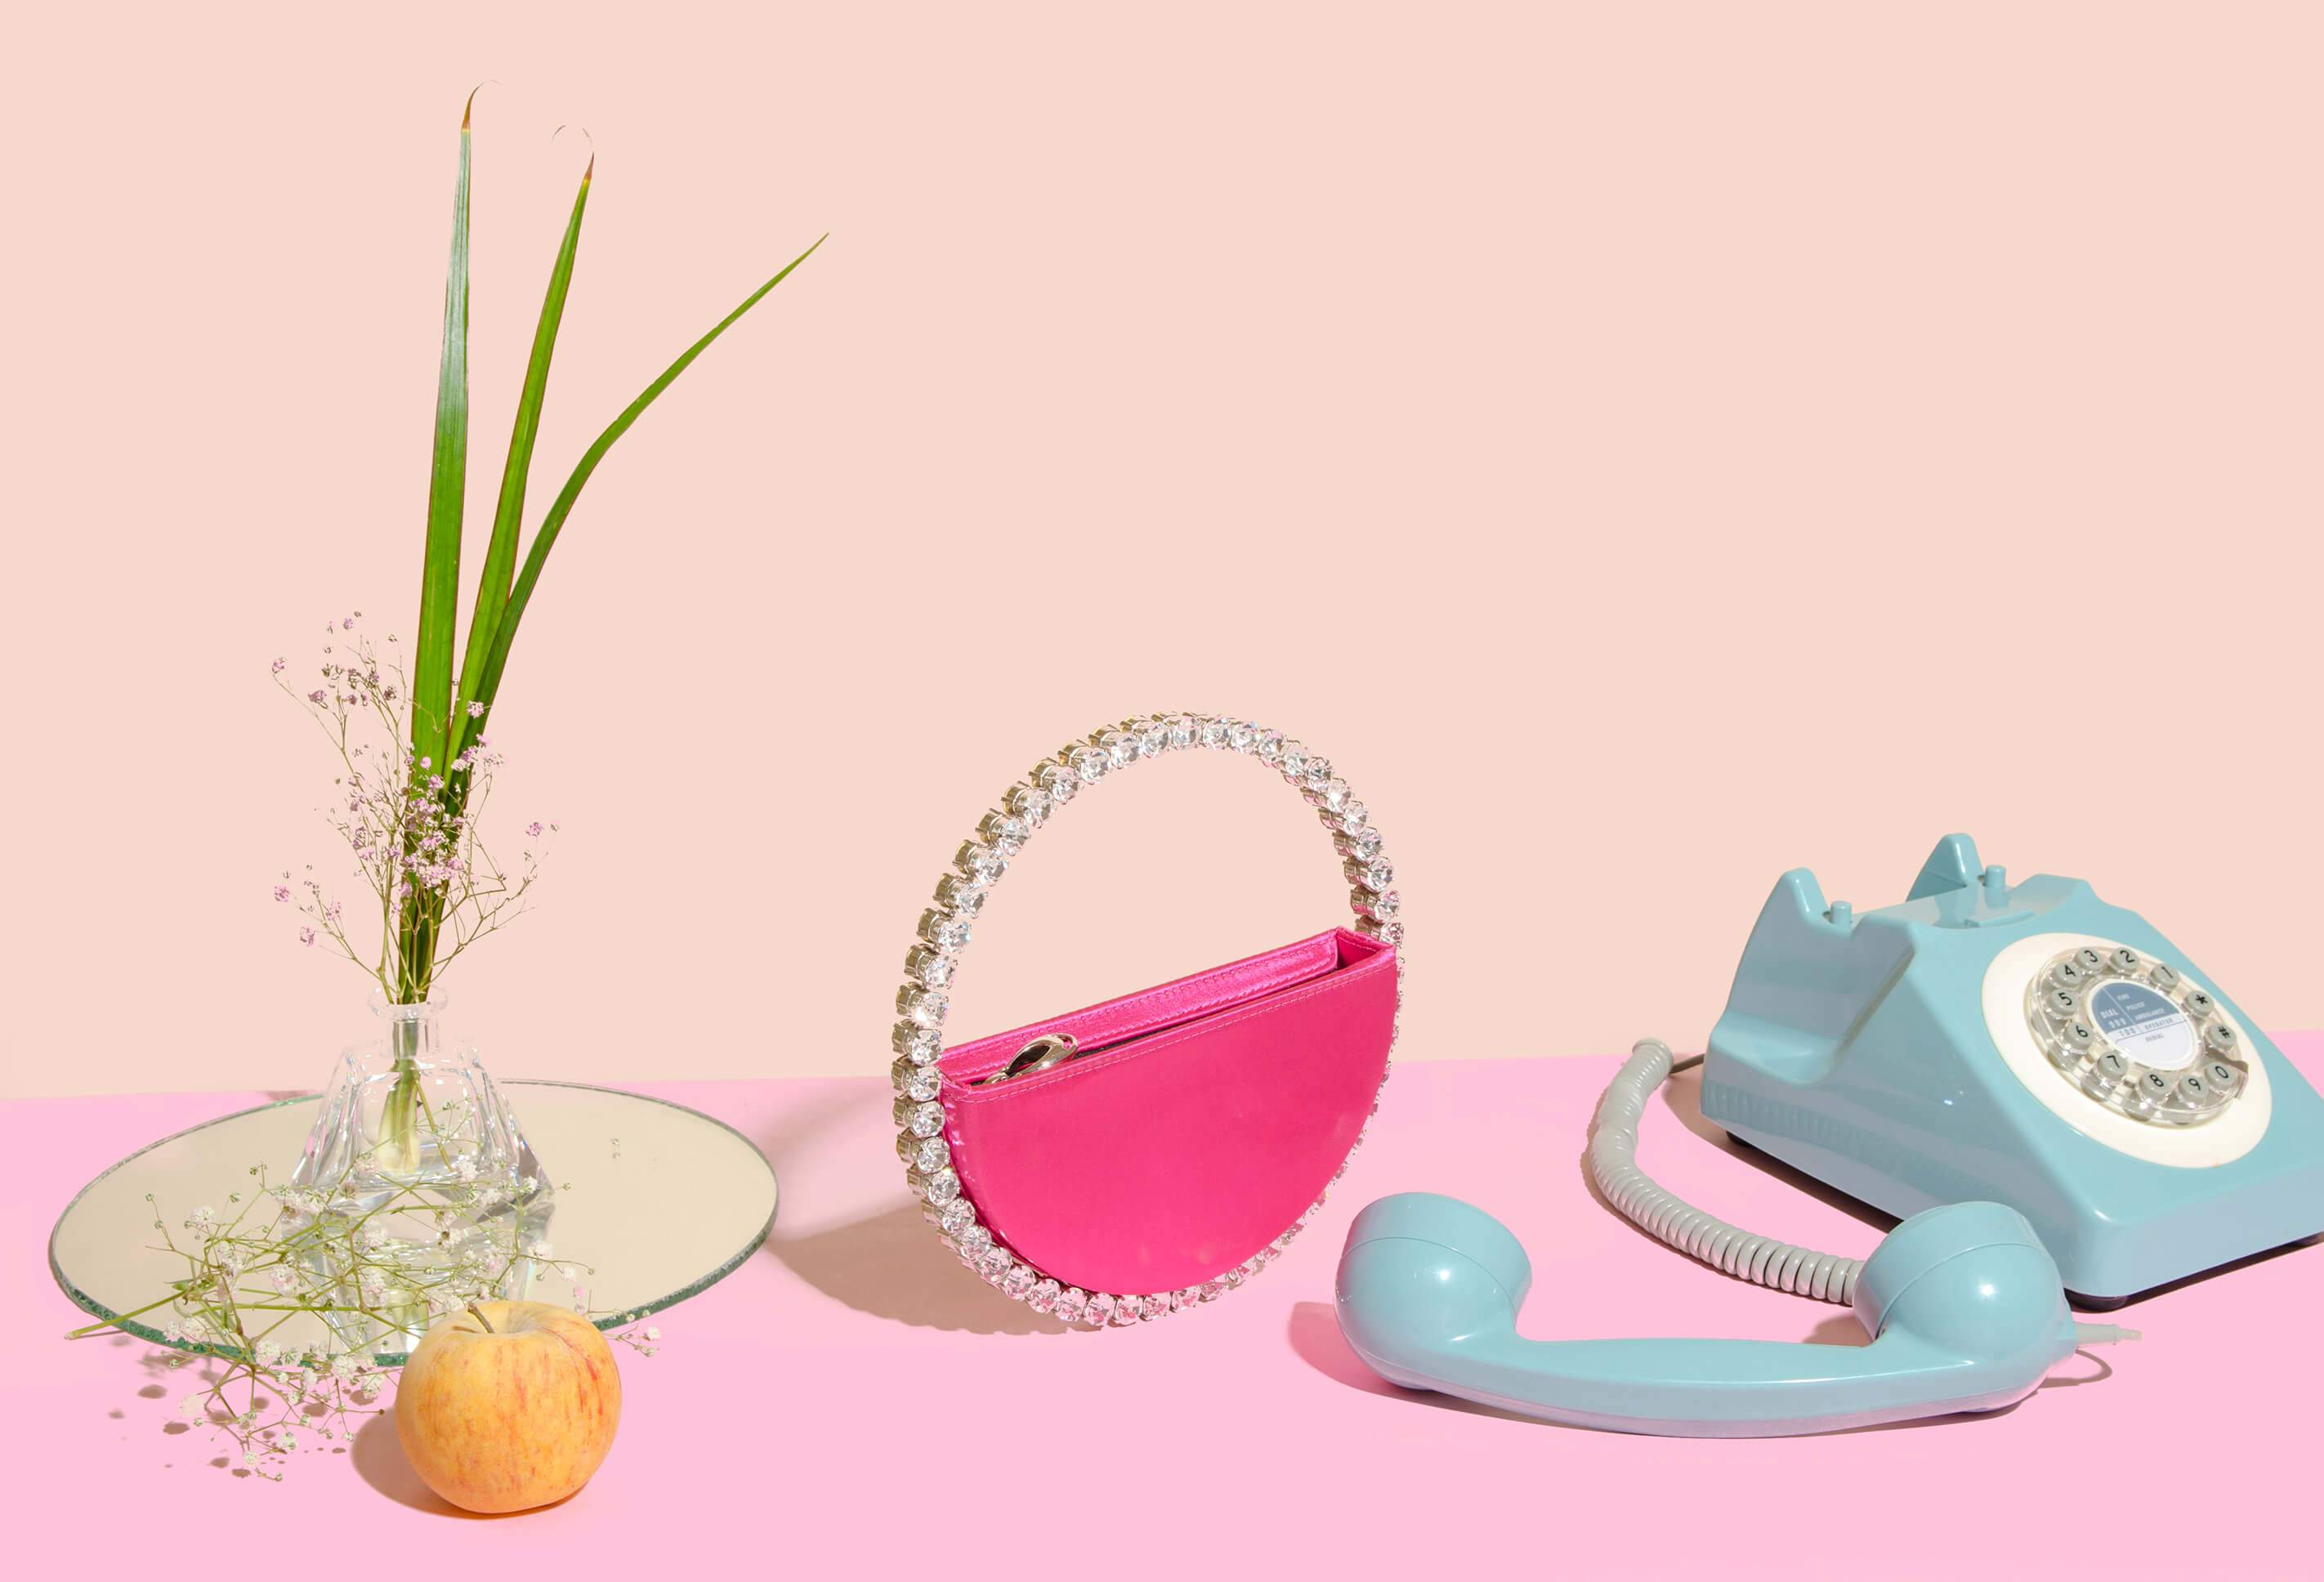 L'alingi London Spring-Summer 2020 Lookbook cover with Pink eternity evening clutch, a blue telephone, an apple and some plants